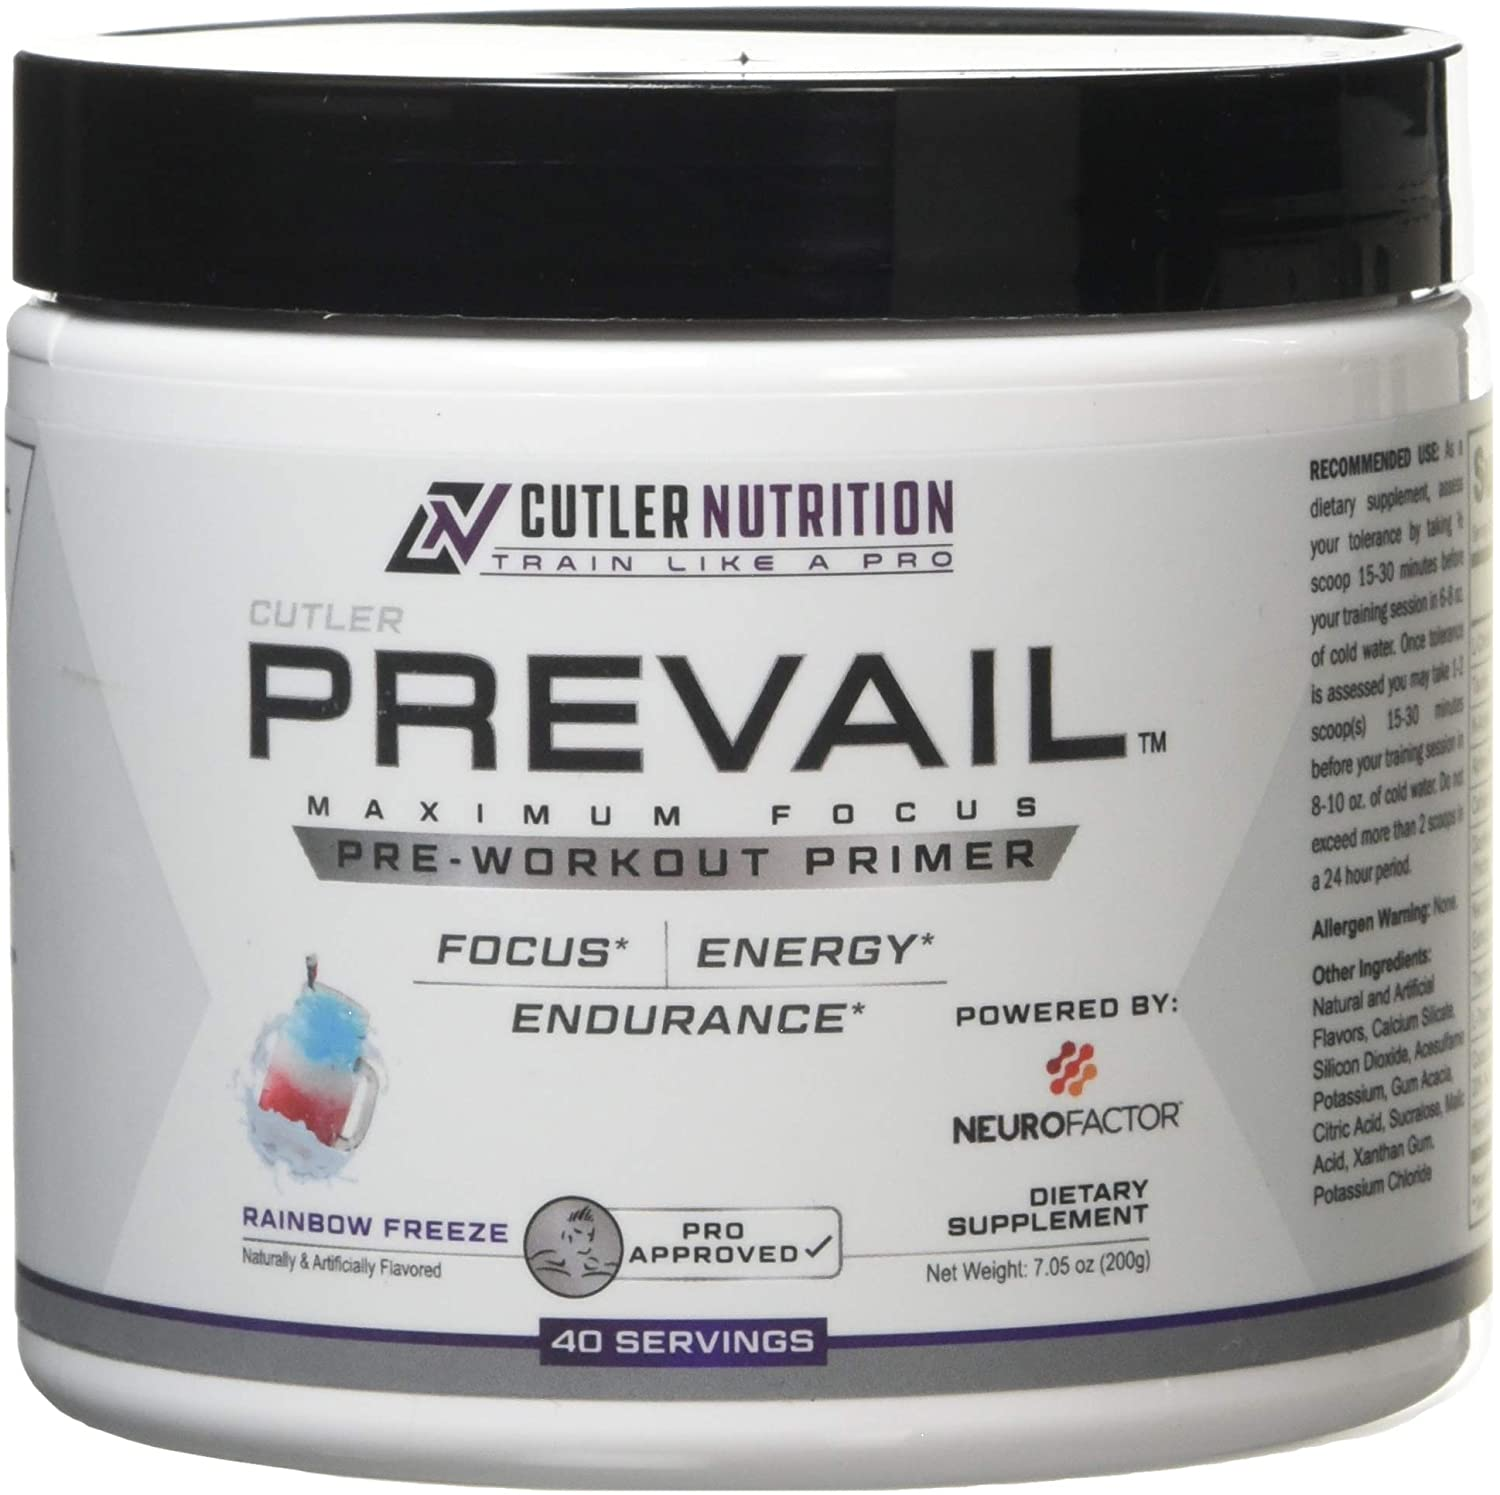 Prevail Pre Workout Powder with Nootropics: Best Pre Workout for Men and Women, Cutting Edge Energy and Focus Supplement with L Citrulline, Alpha GPC, L Tyrosine, Neurofactor | Rainbow Freeze, 40 SRV